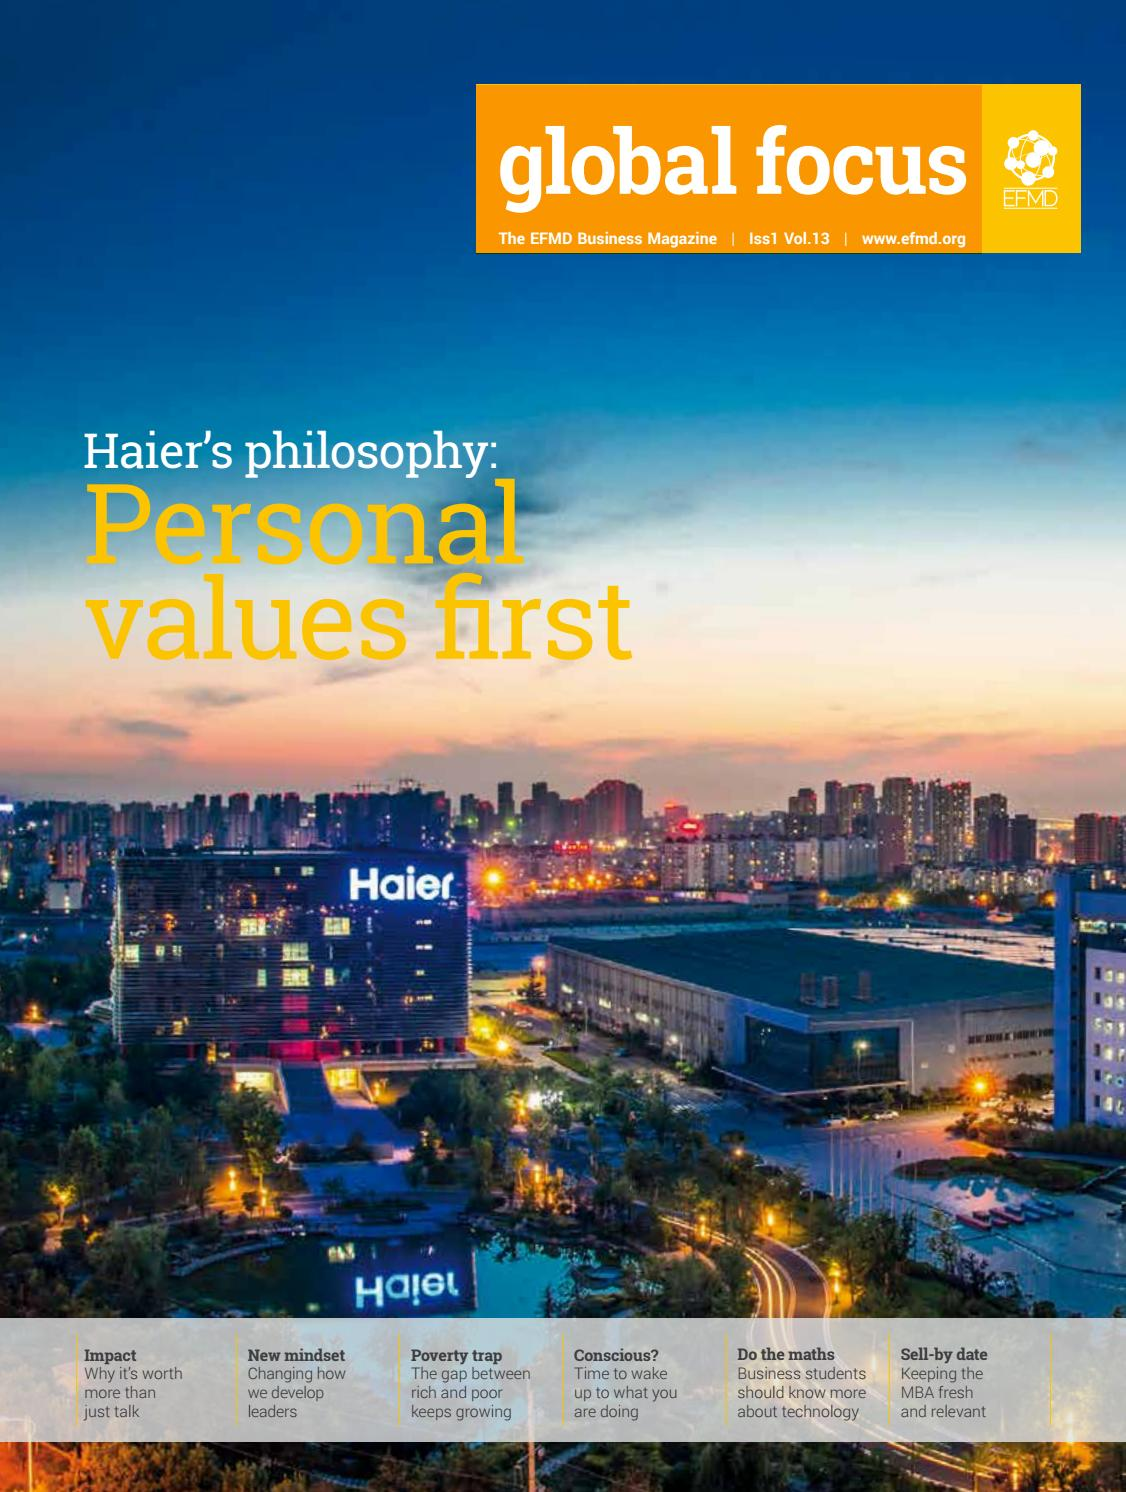 Global Focus, Vol 13 Issue 1 - Haier's philosophy: Personal values